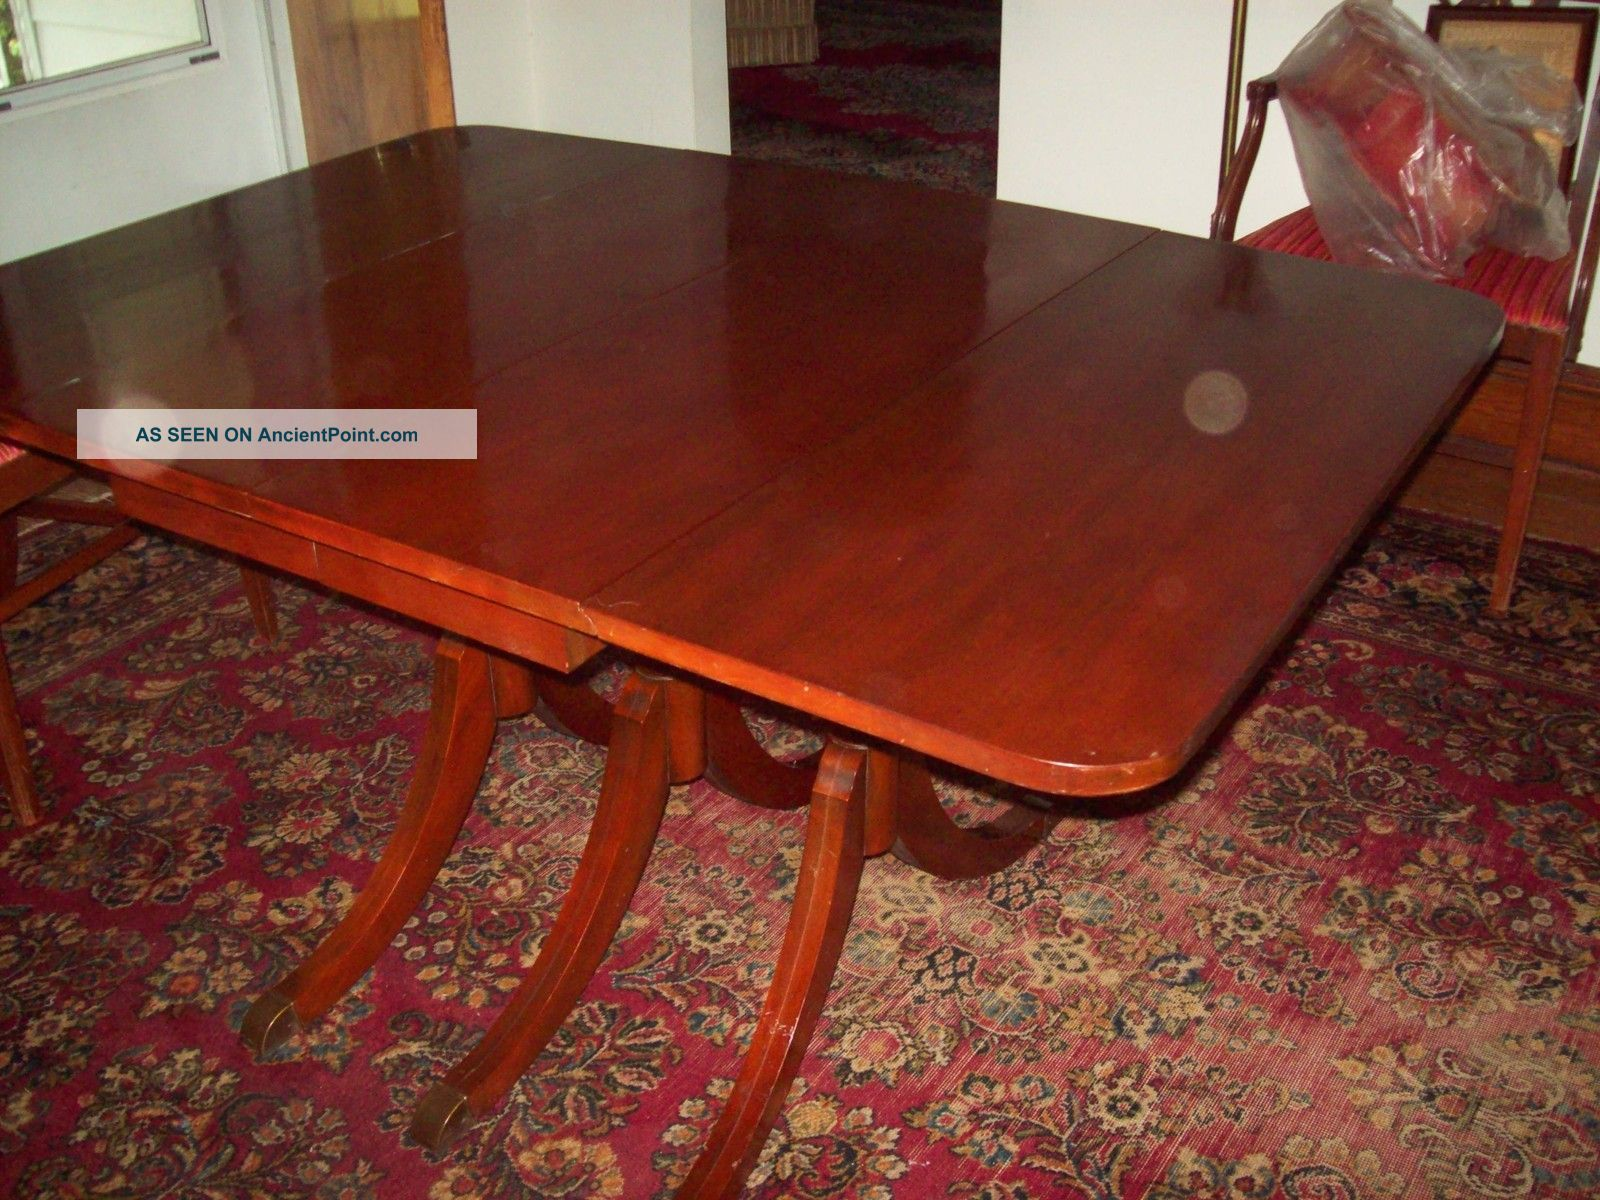 Craigslist Texoma Furniture 9 Images Craigslist Albuquerque Free Stuff Car Review And